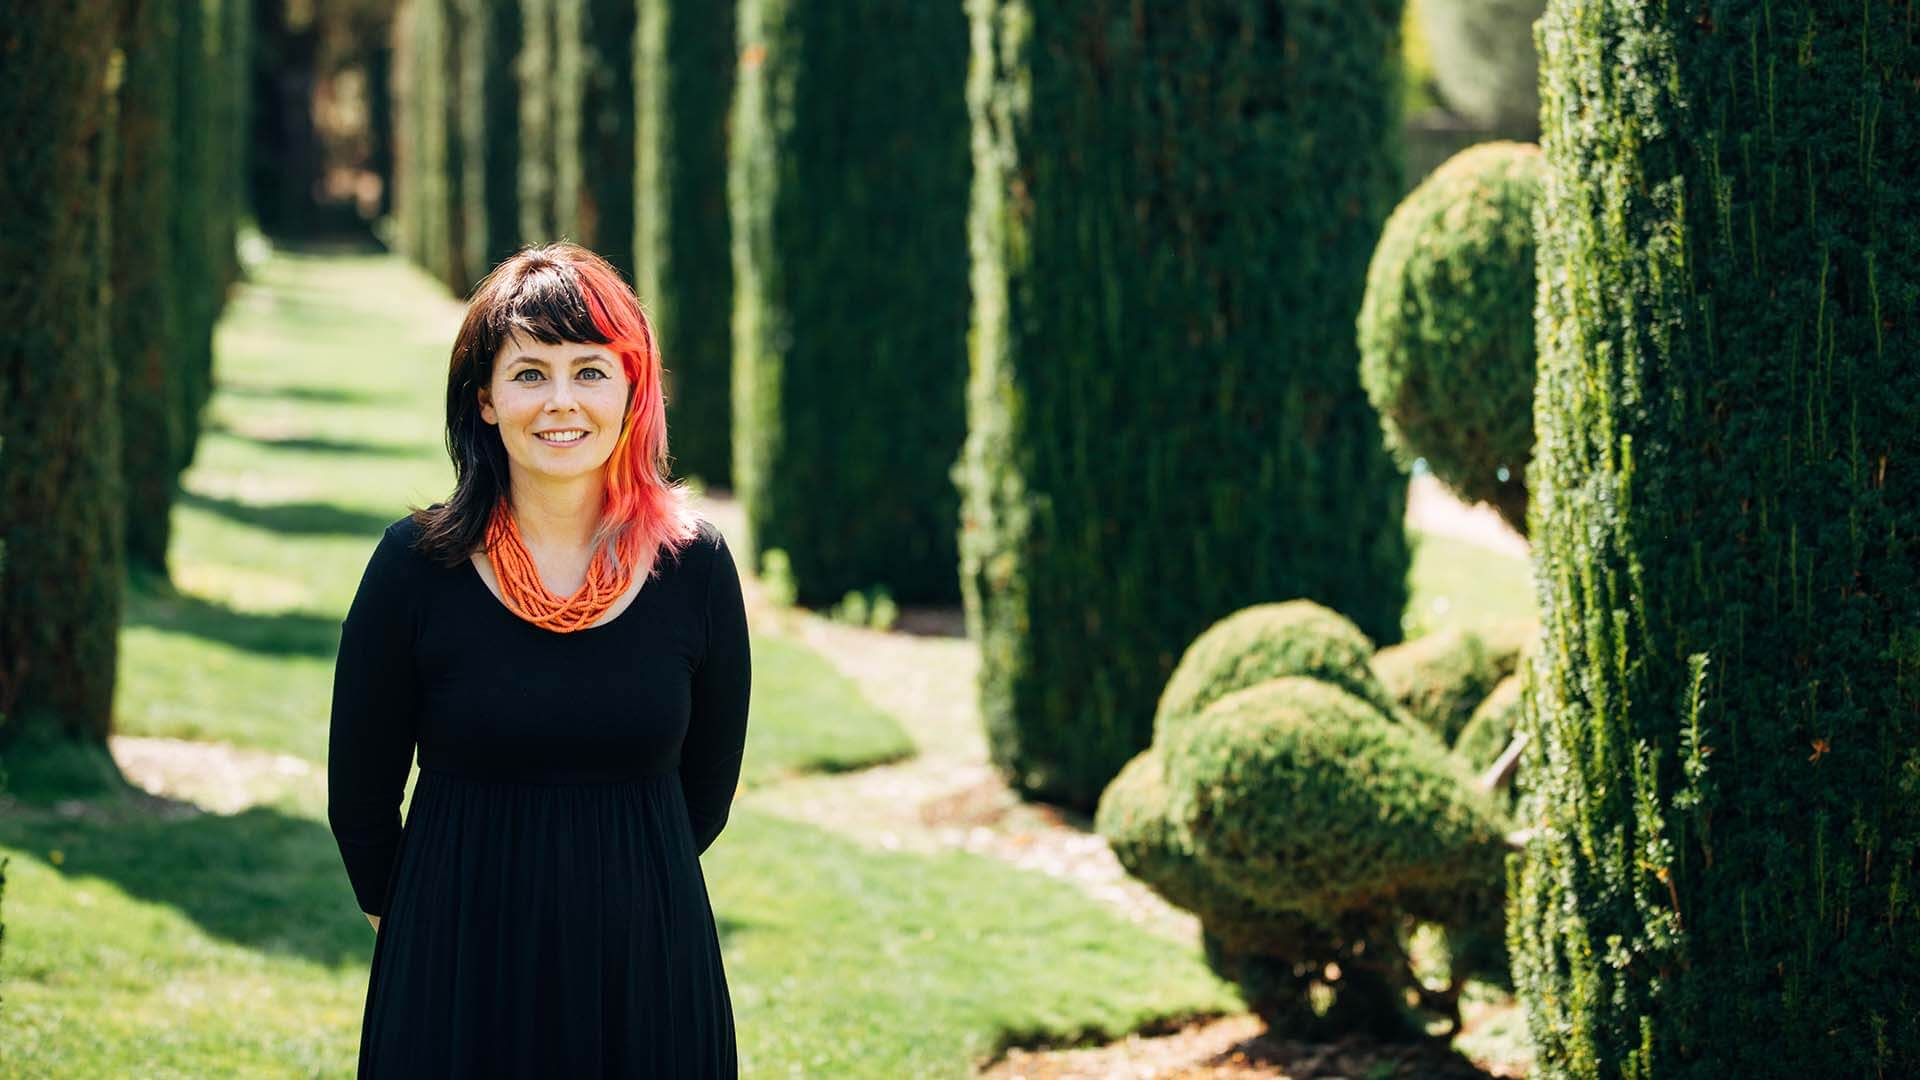 A women with pink and black hair smiles with her hands behind her back. Columns of greenery are behind her.